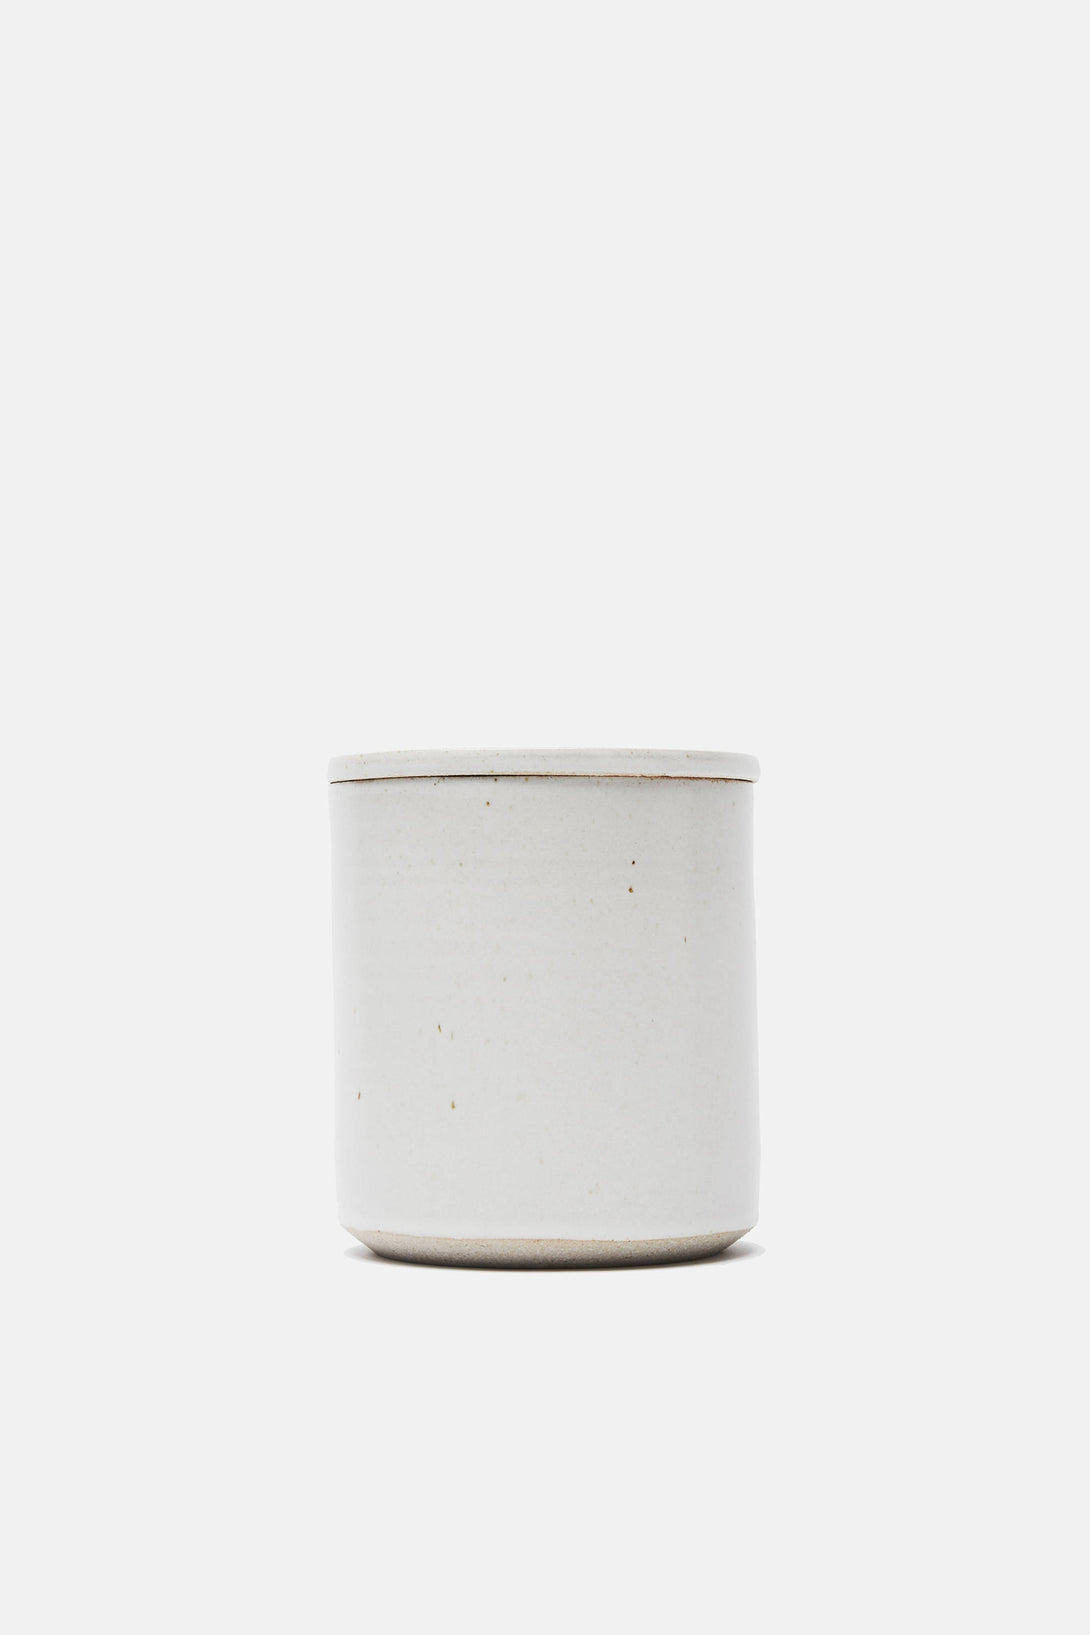 Matte White Lidded Kitchen Vessel - Small